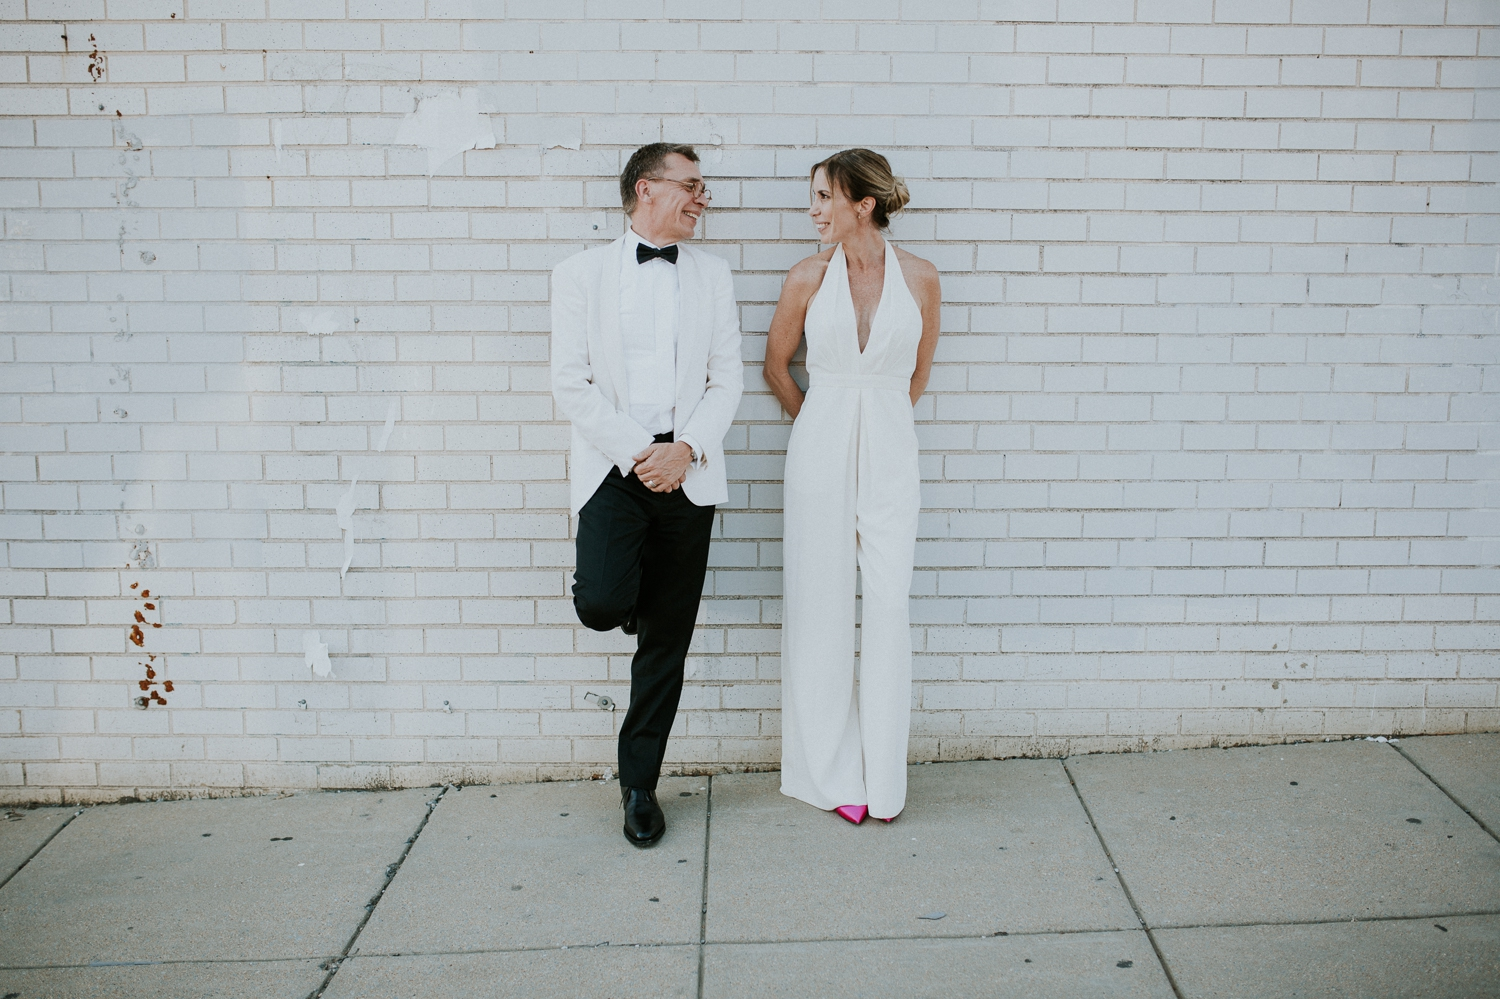 washington-dc-union-market-wedding-elopement-photography 35.jpg